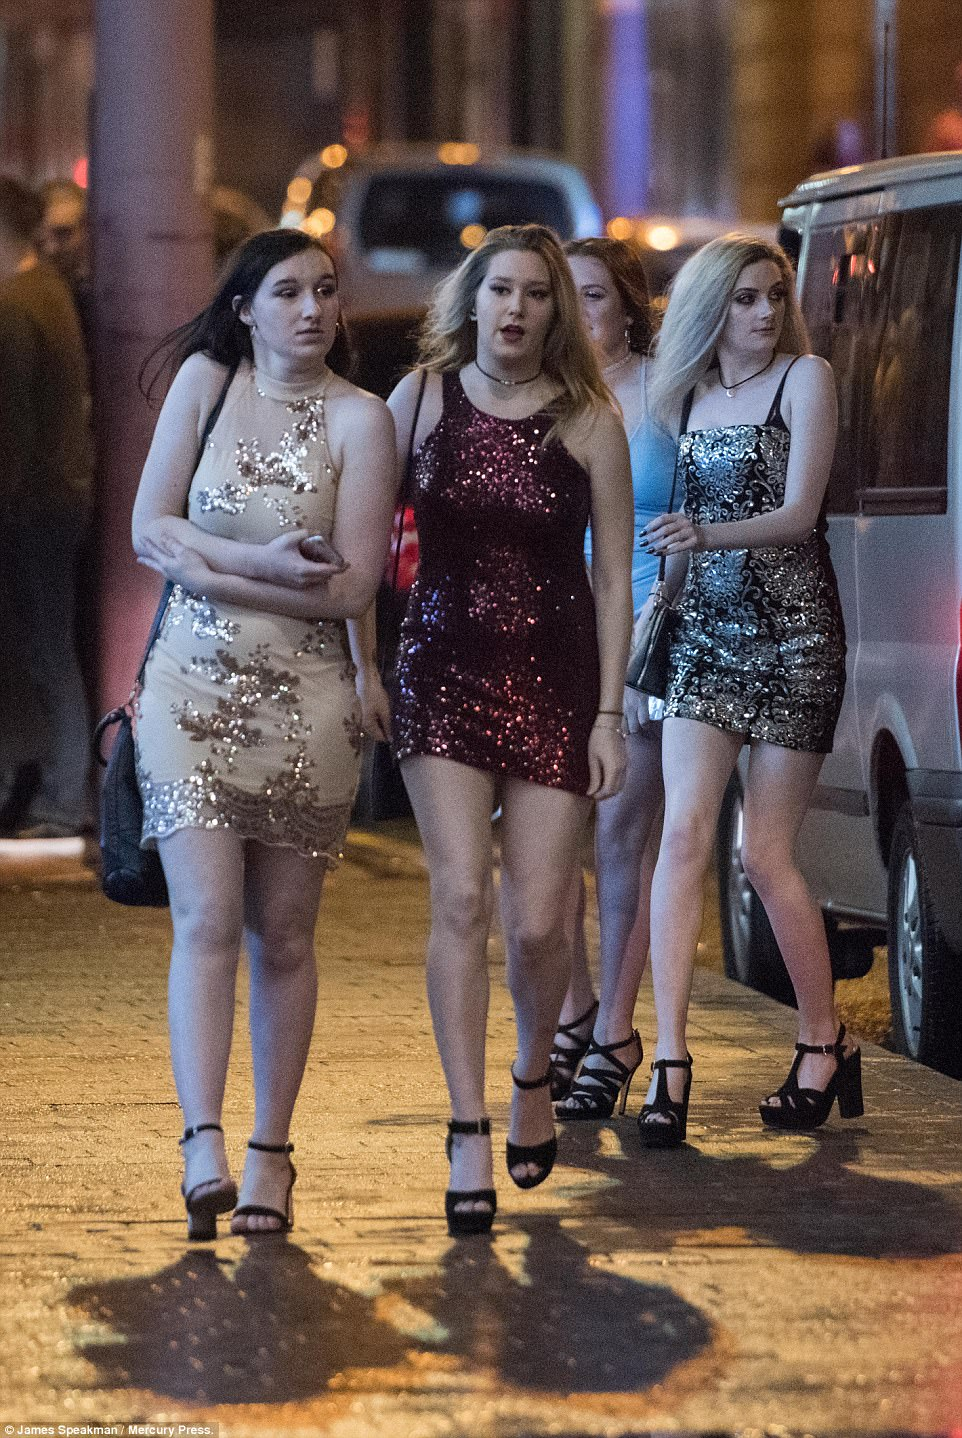 47ABBA7700000578-5225397-Revellers_in_Blackpool_braved_the_cold_to_see_the_New_Year_in_in-a-42_1514791409772